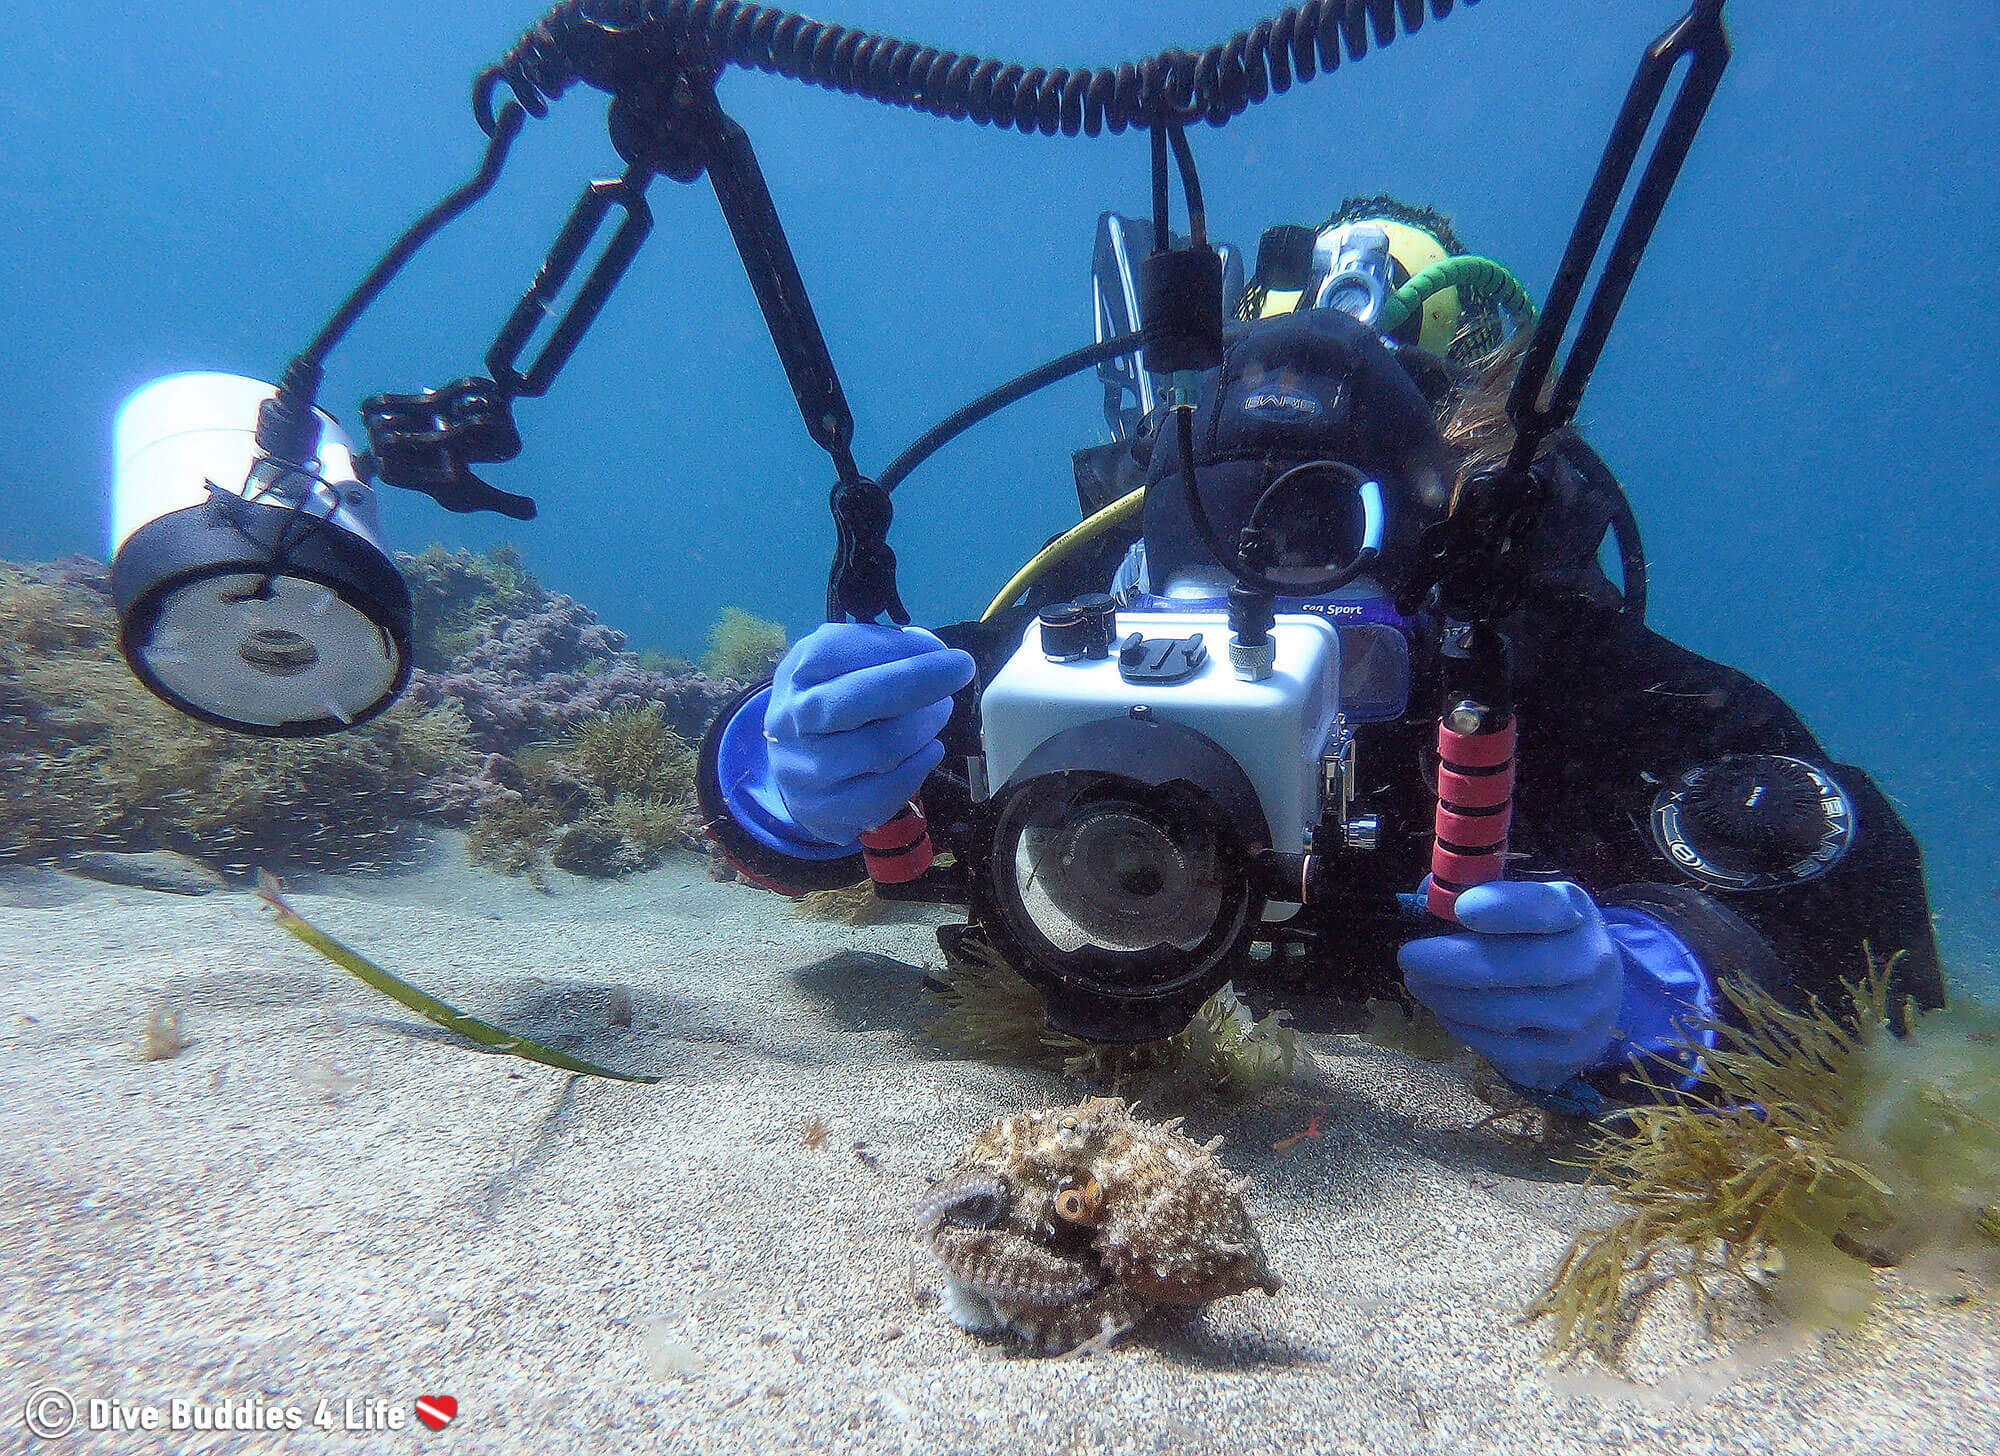 Ali Scuba Diving from the Shore In Spain And Photographing A Small Octopus On The Bottom